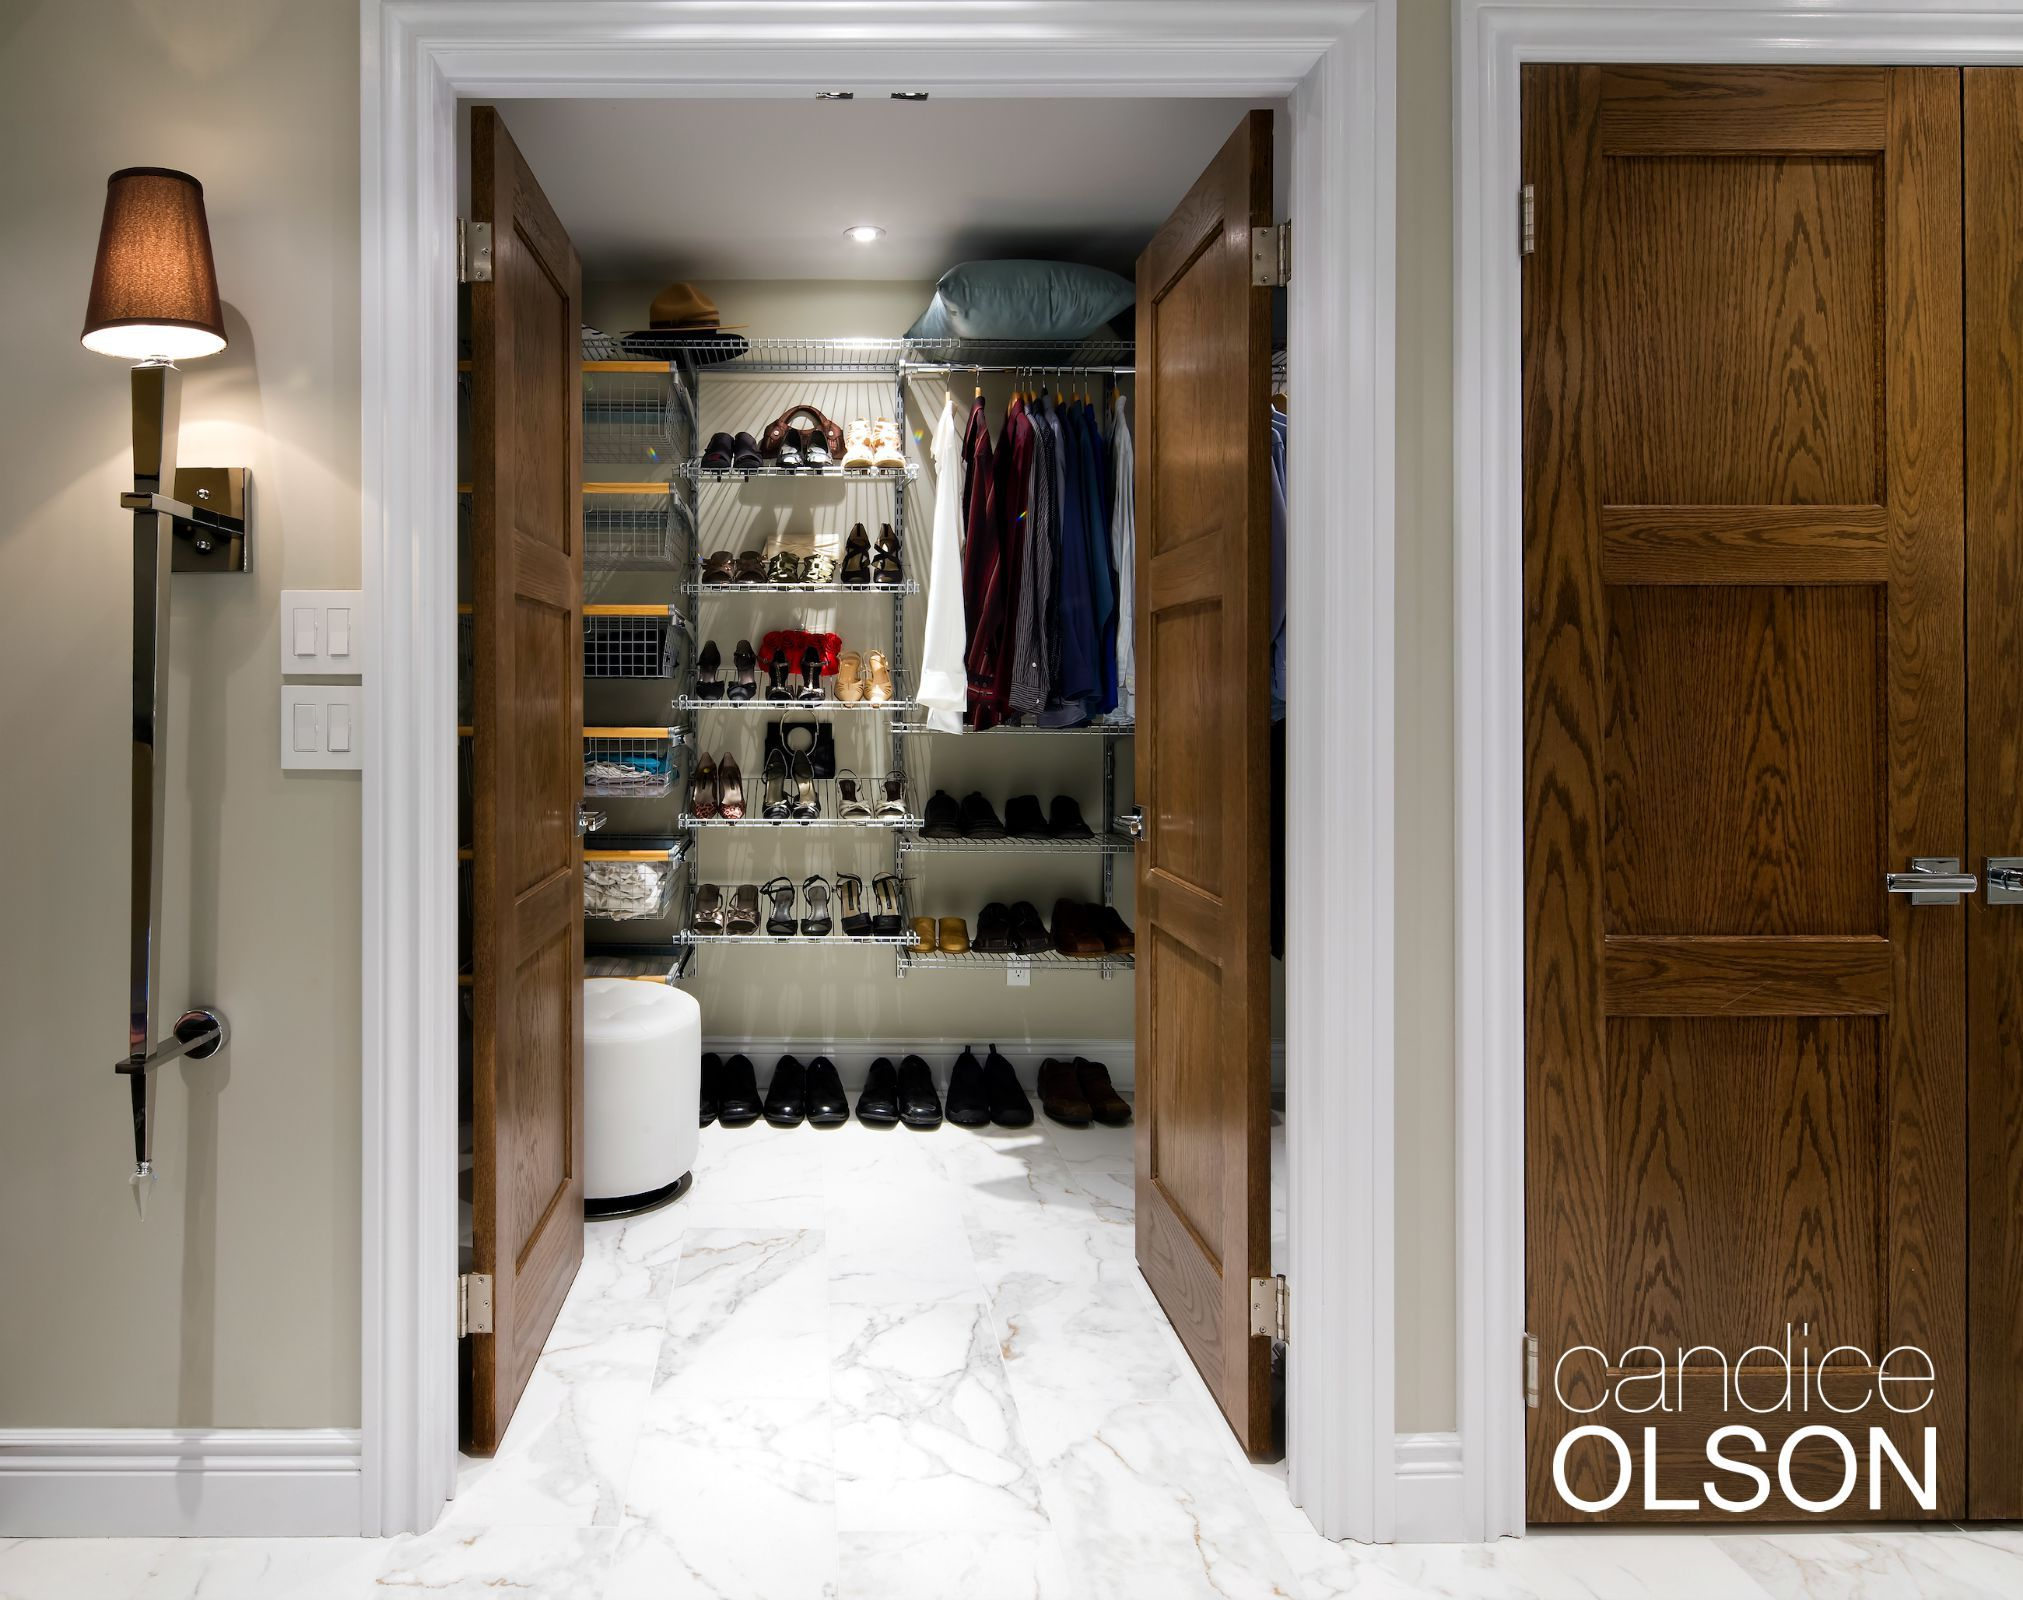 Another important consideration in bedrooms (and not just in kid's rooms) are nightlights so you can safely find yourself to the loo and back. Don't forget closet lighting that helps prevent low-lighting-level fashion crimes!